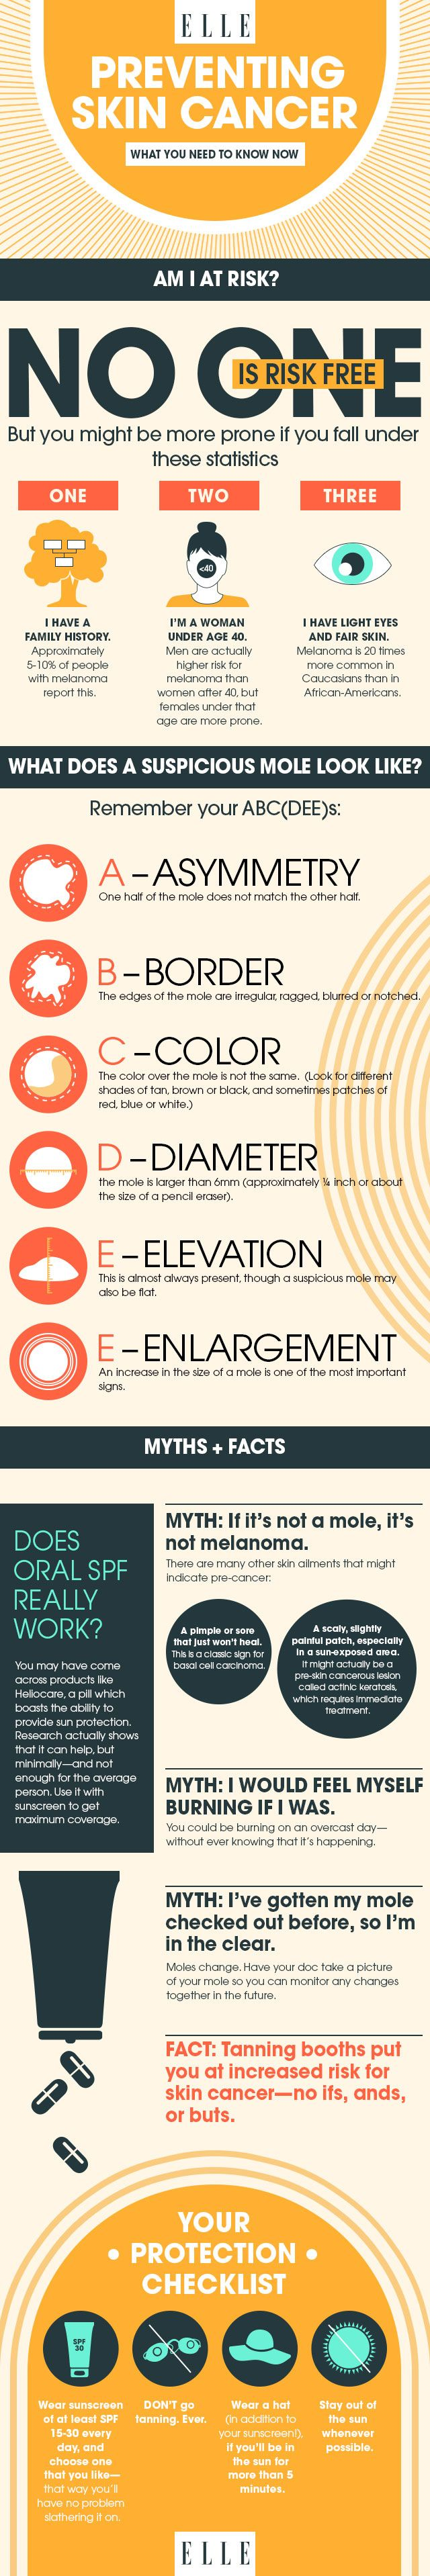 Skin Cancer Prevention Infographic - What You Need To Know Now About Preventing Skin Cancer - Elle